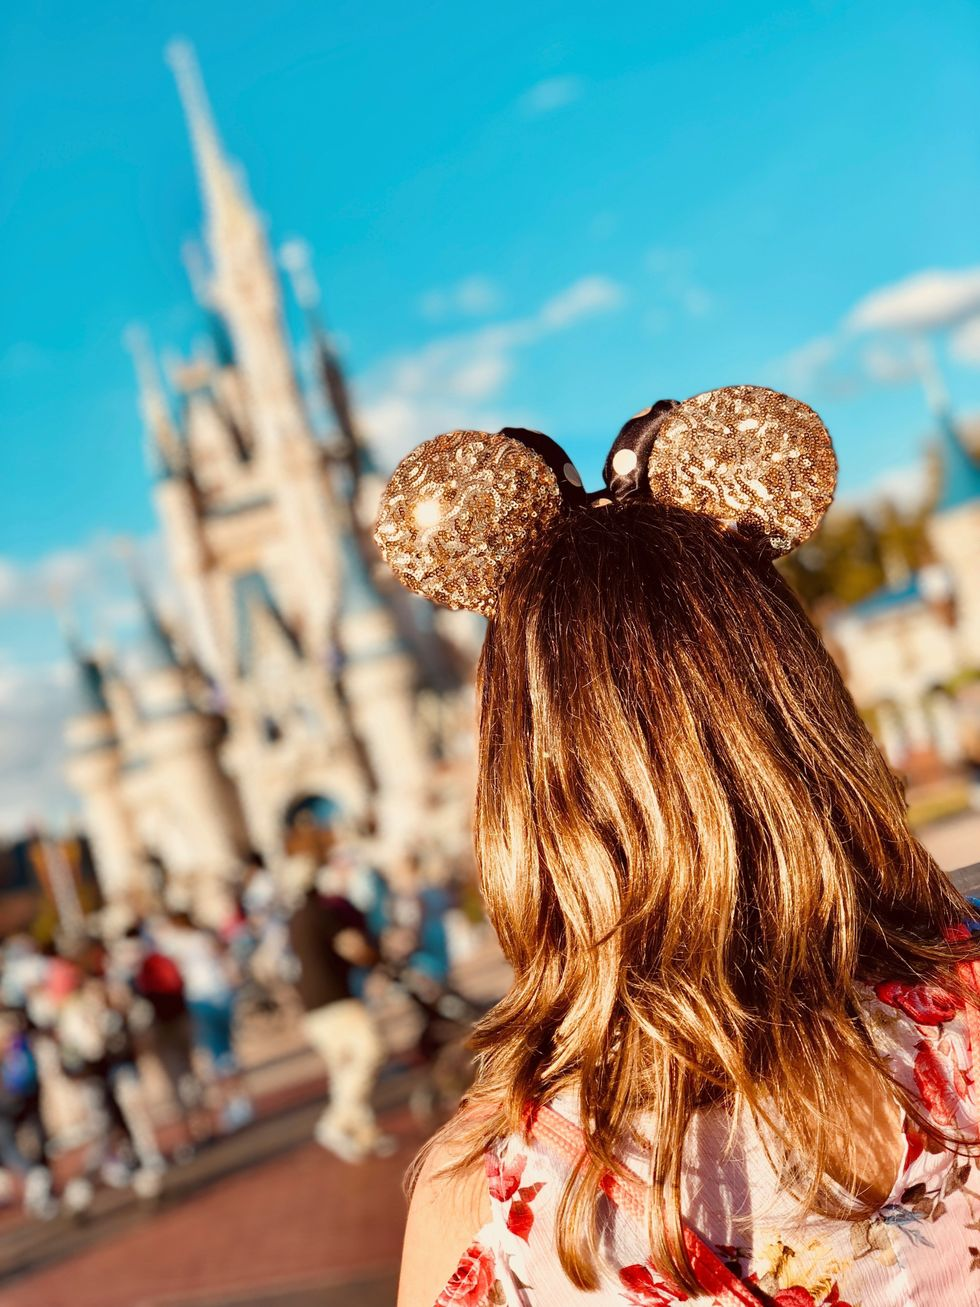 The 6 Grueling But Rewarding Stages Of Applying To The Disney College Program